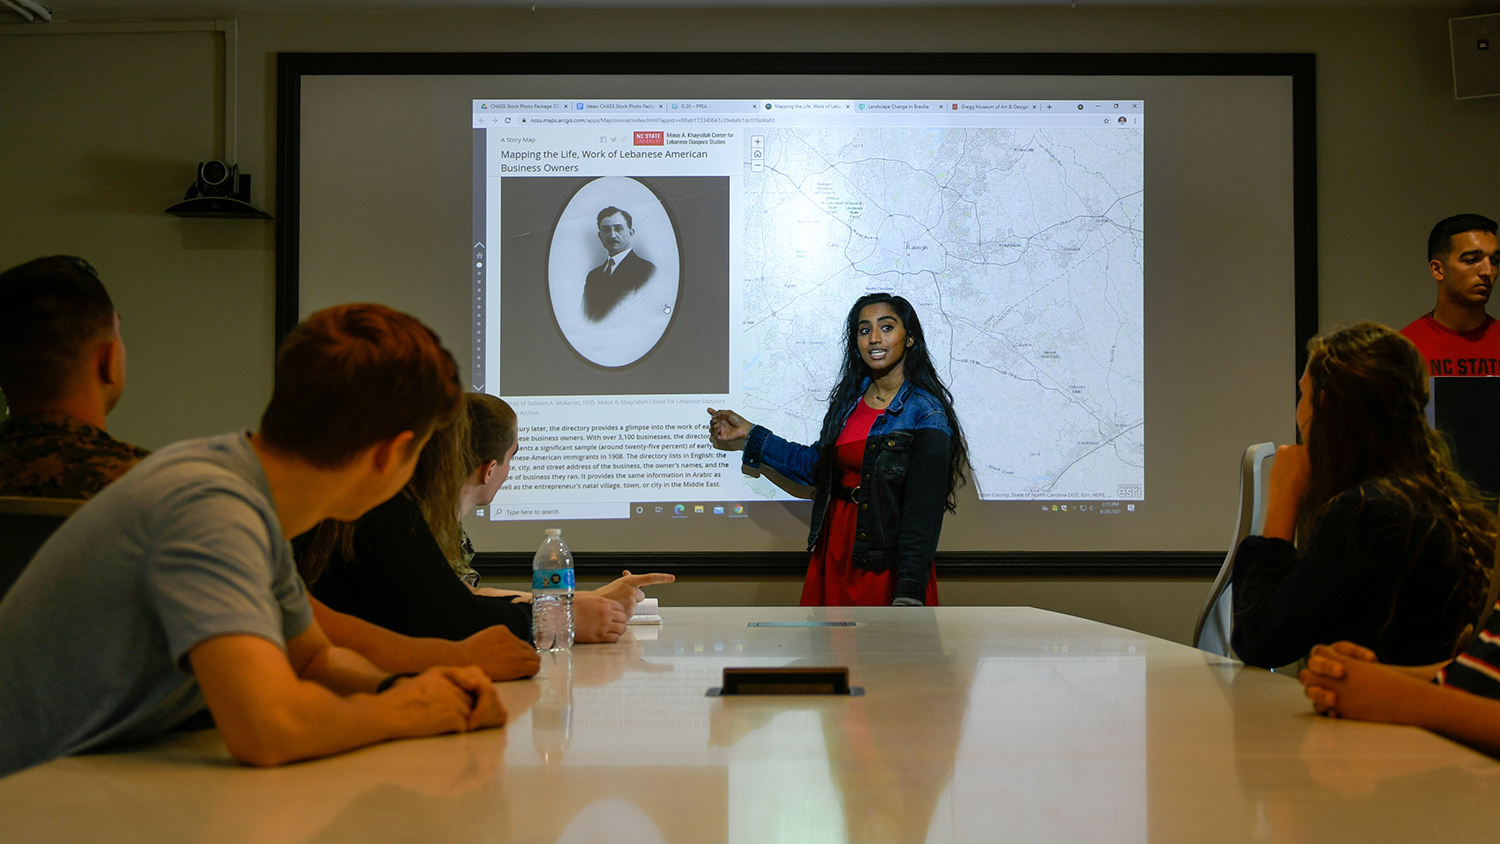 A student gives a presentation inside a conference room